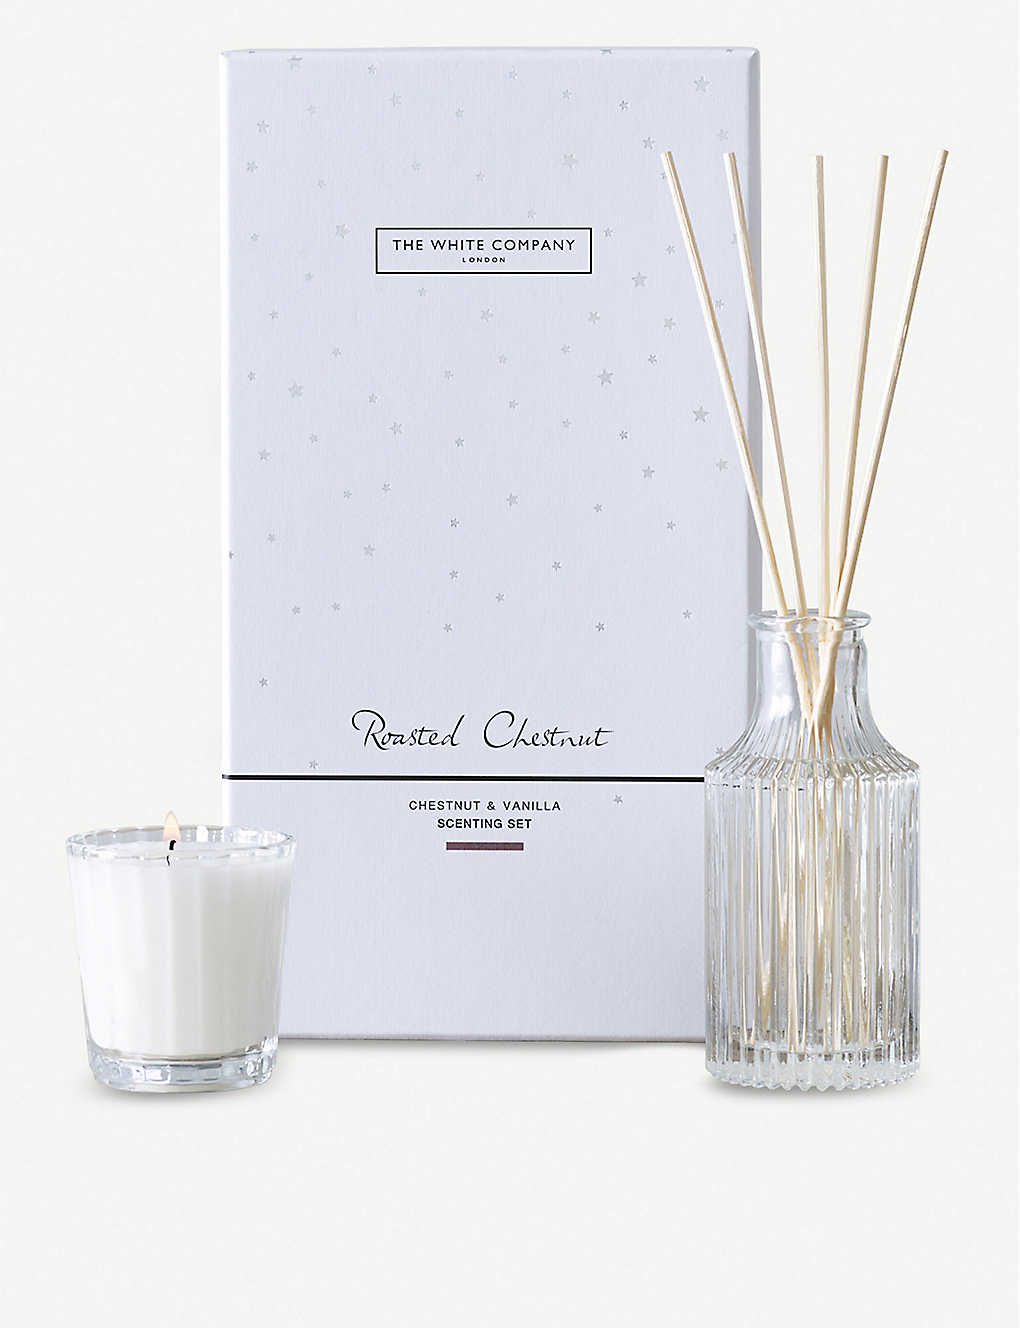 THE WHITE COMPANY: Roasted Chestnut scenting set